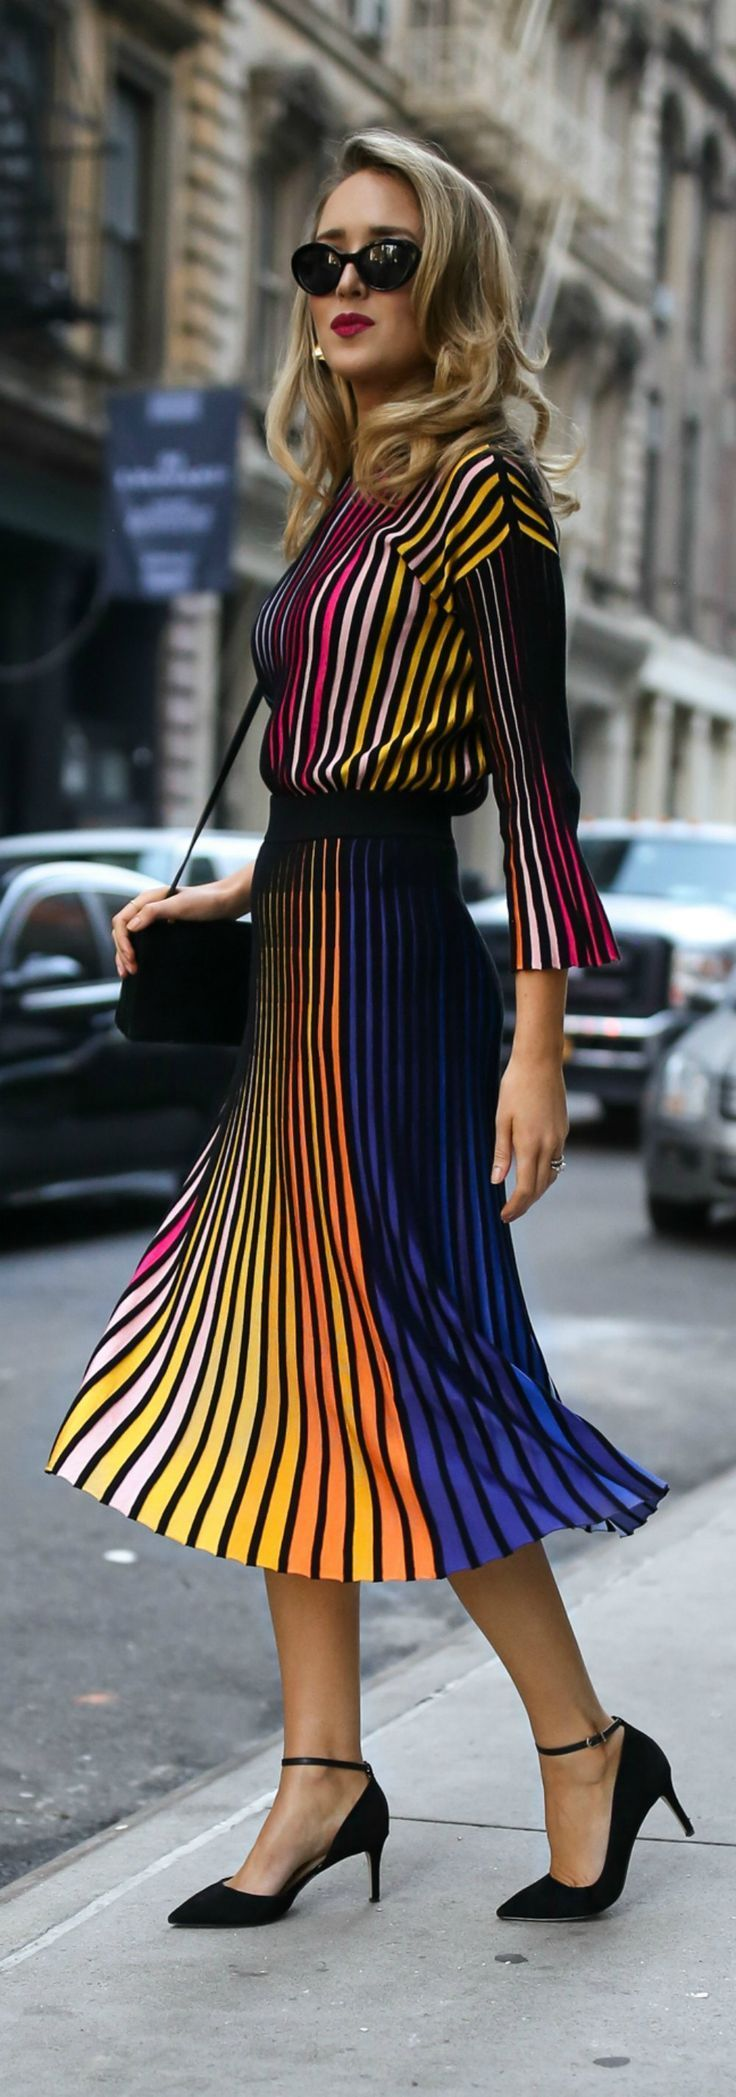 RAINBOW DRESSING //  Striped multicolored long sleeve sweater, coordinating striped pleated multicolored midi skirt, gold sculptural earrings and black ankle-strap pumps {Kenzo, YSL, fall fashion, colorful dressing, midi skirt, classic dressing, classy style}